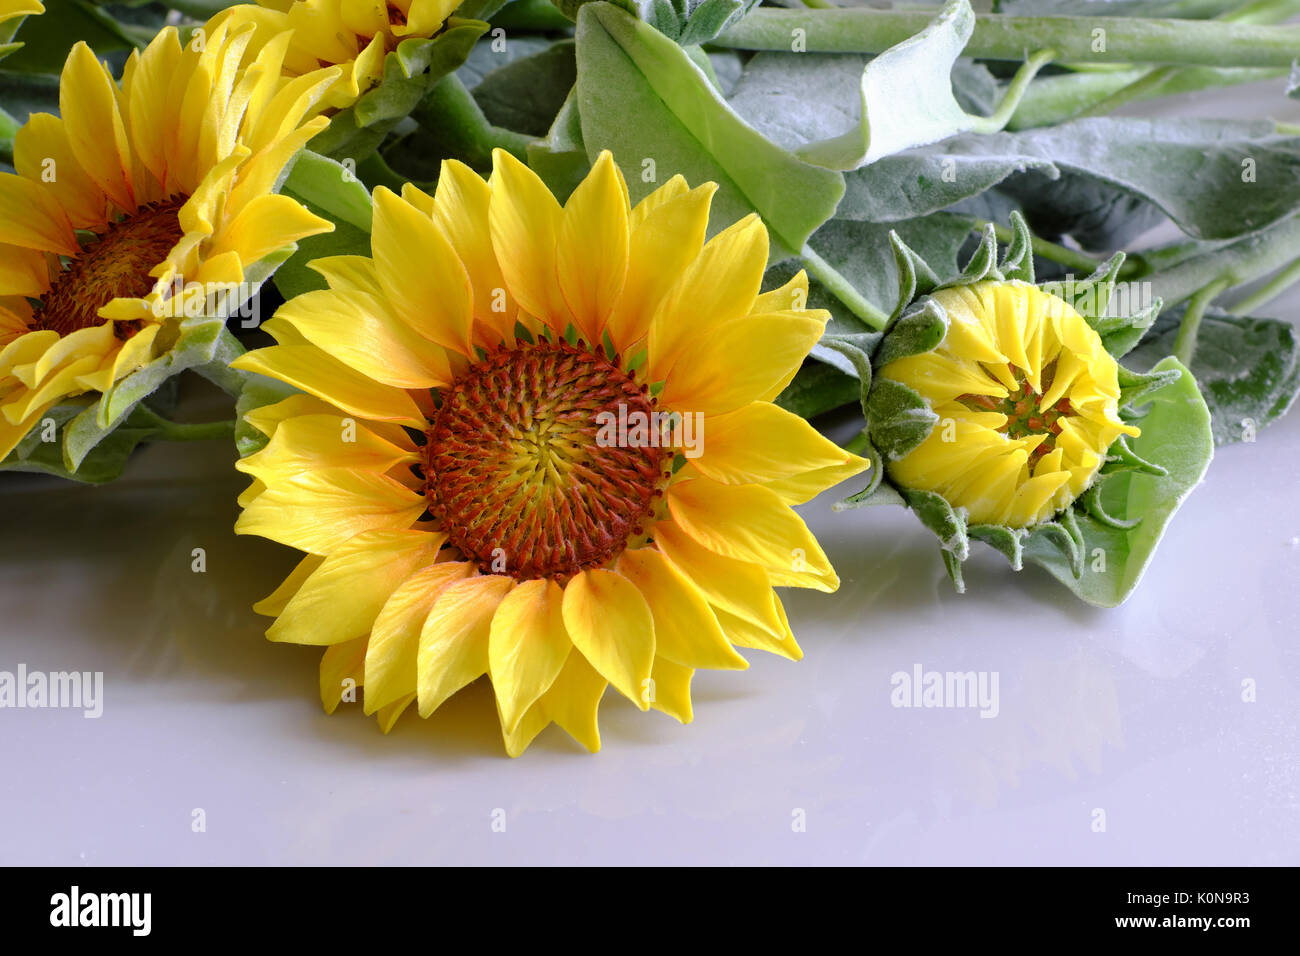 Amazing Clay Flower Handmade Product For Home Decor Sunflower Bouquet Bloom In Yellow Green Leaf On White Background Beautiful Artificial